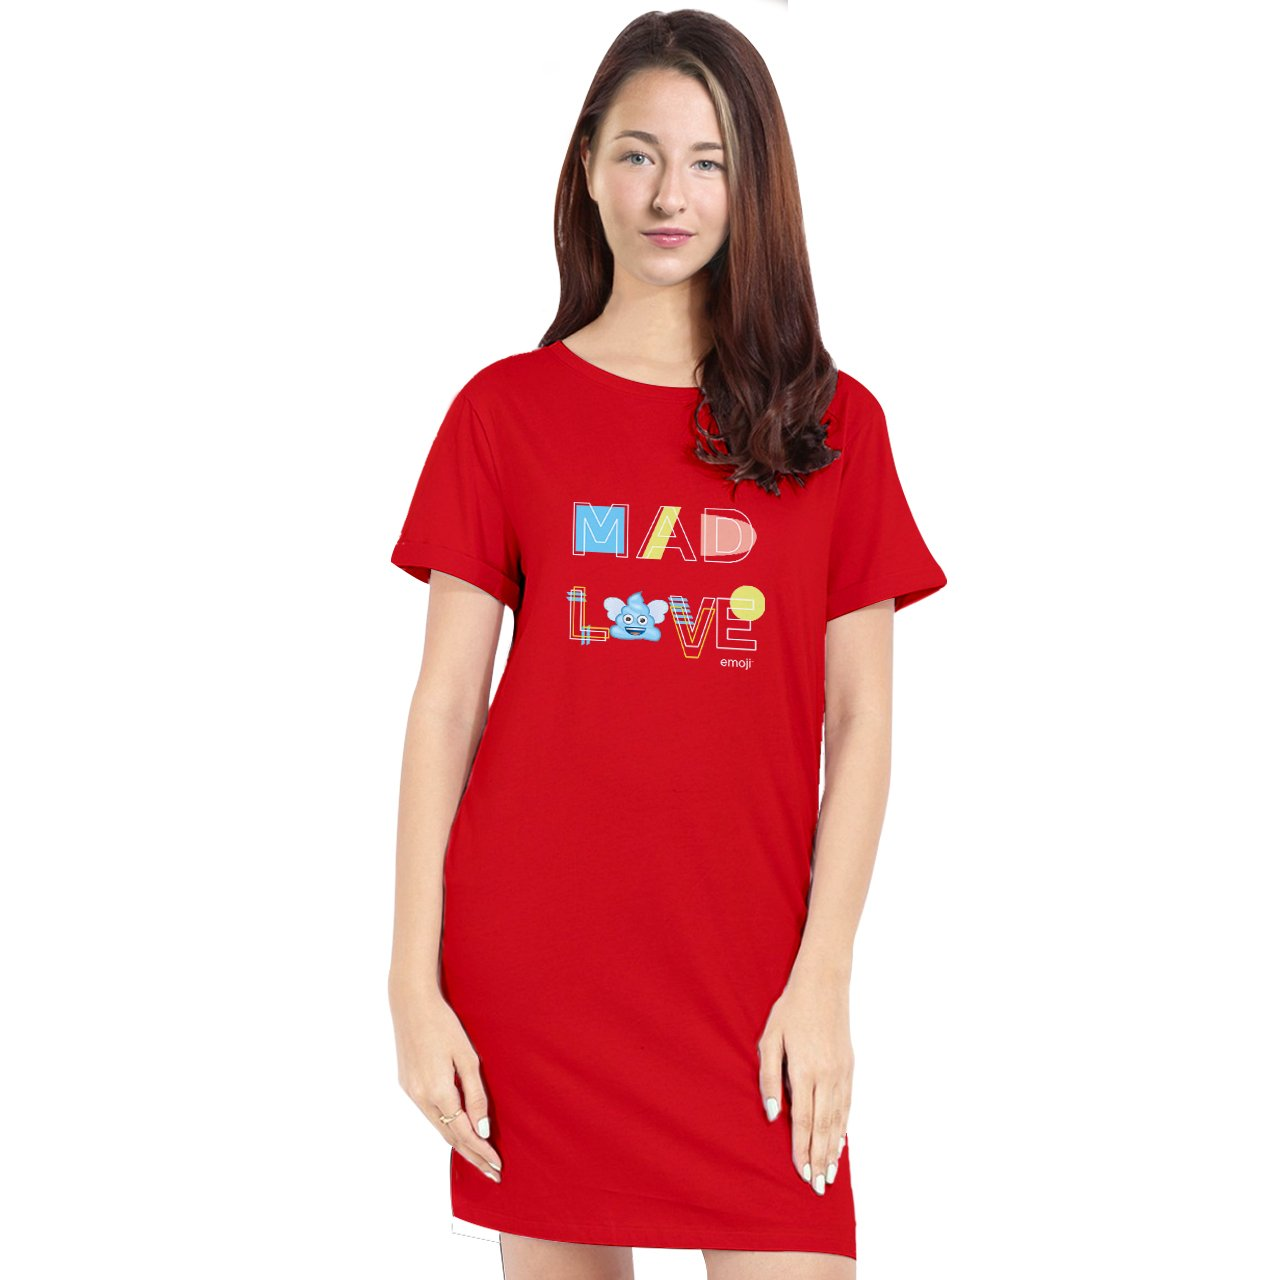 Official Licensed emoji Printed T-Shirt Dress for Women - Mad Love